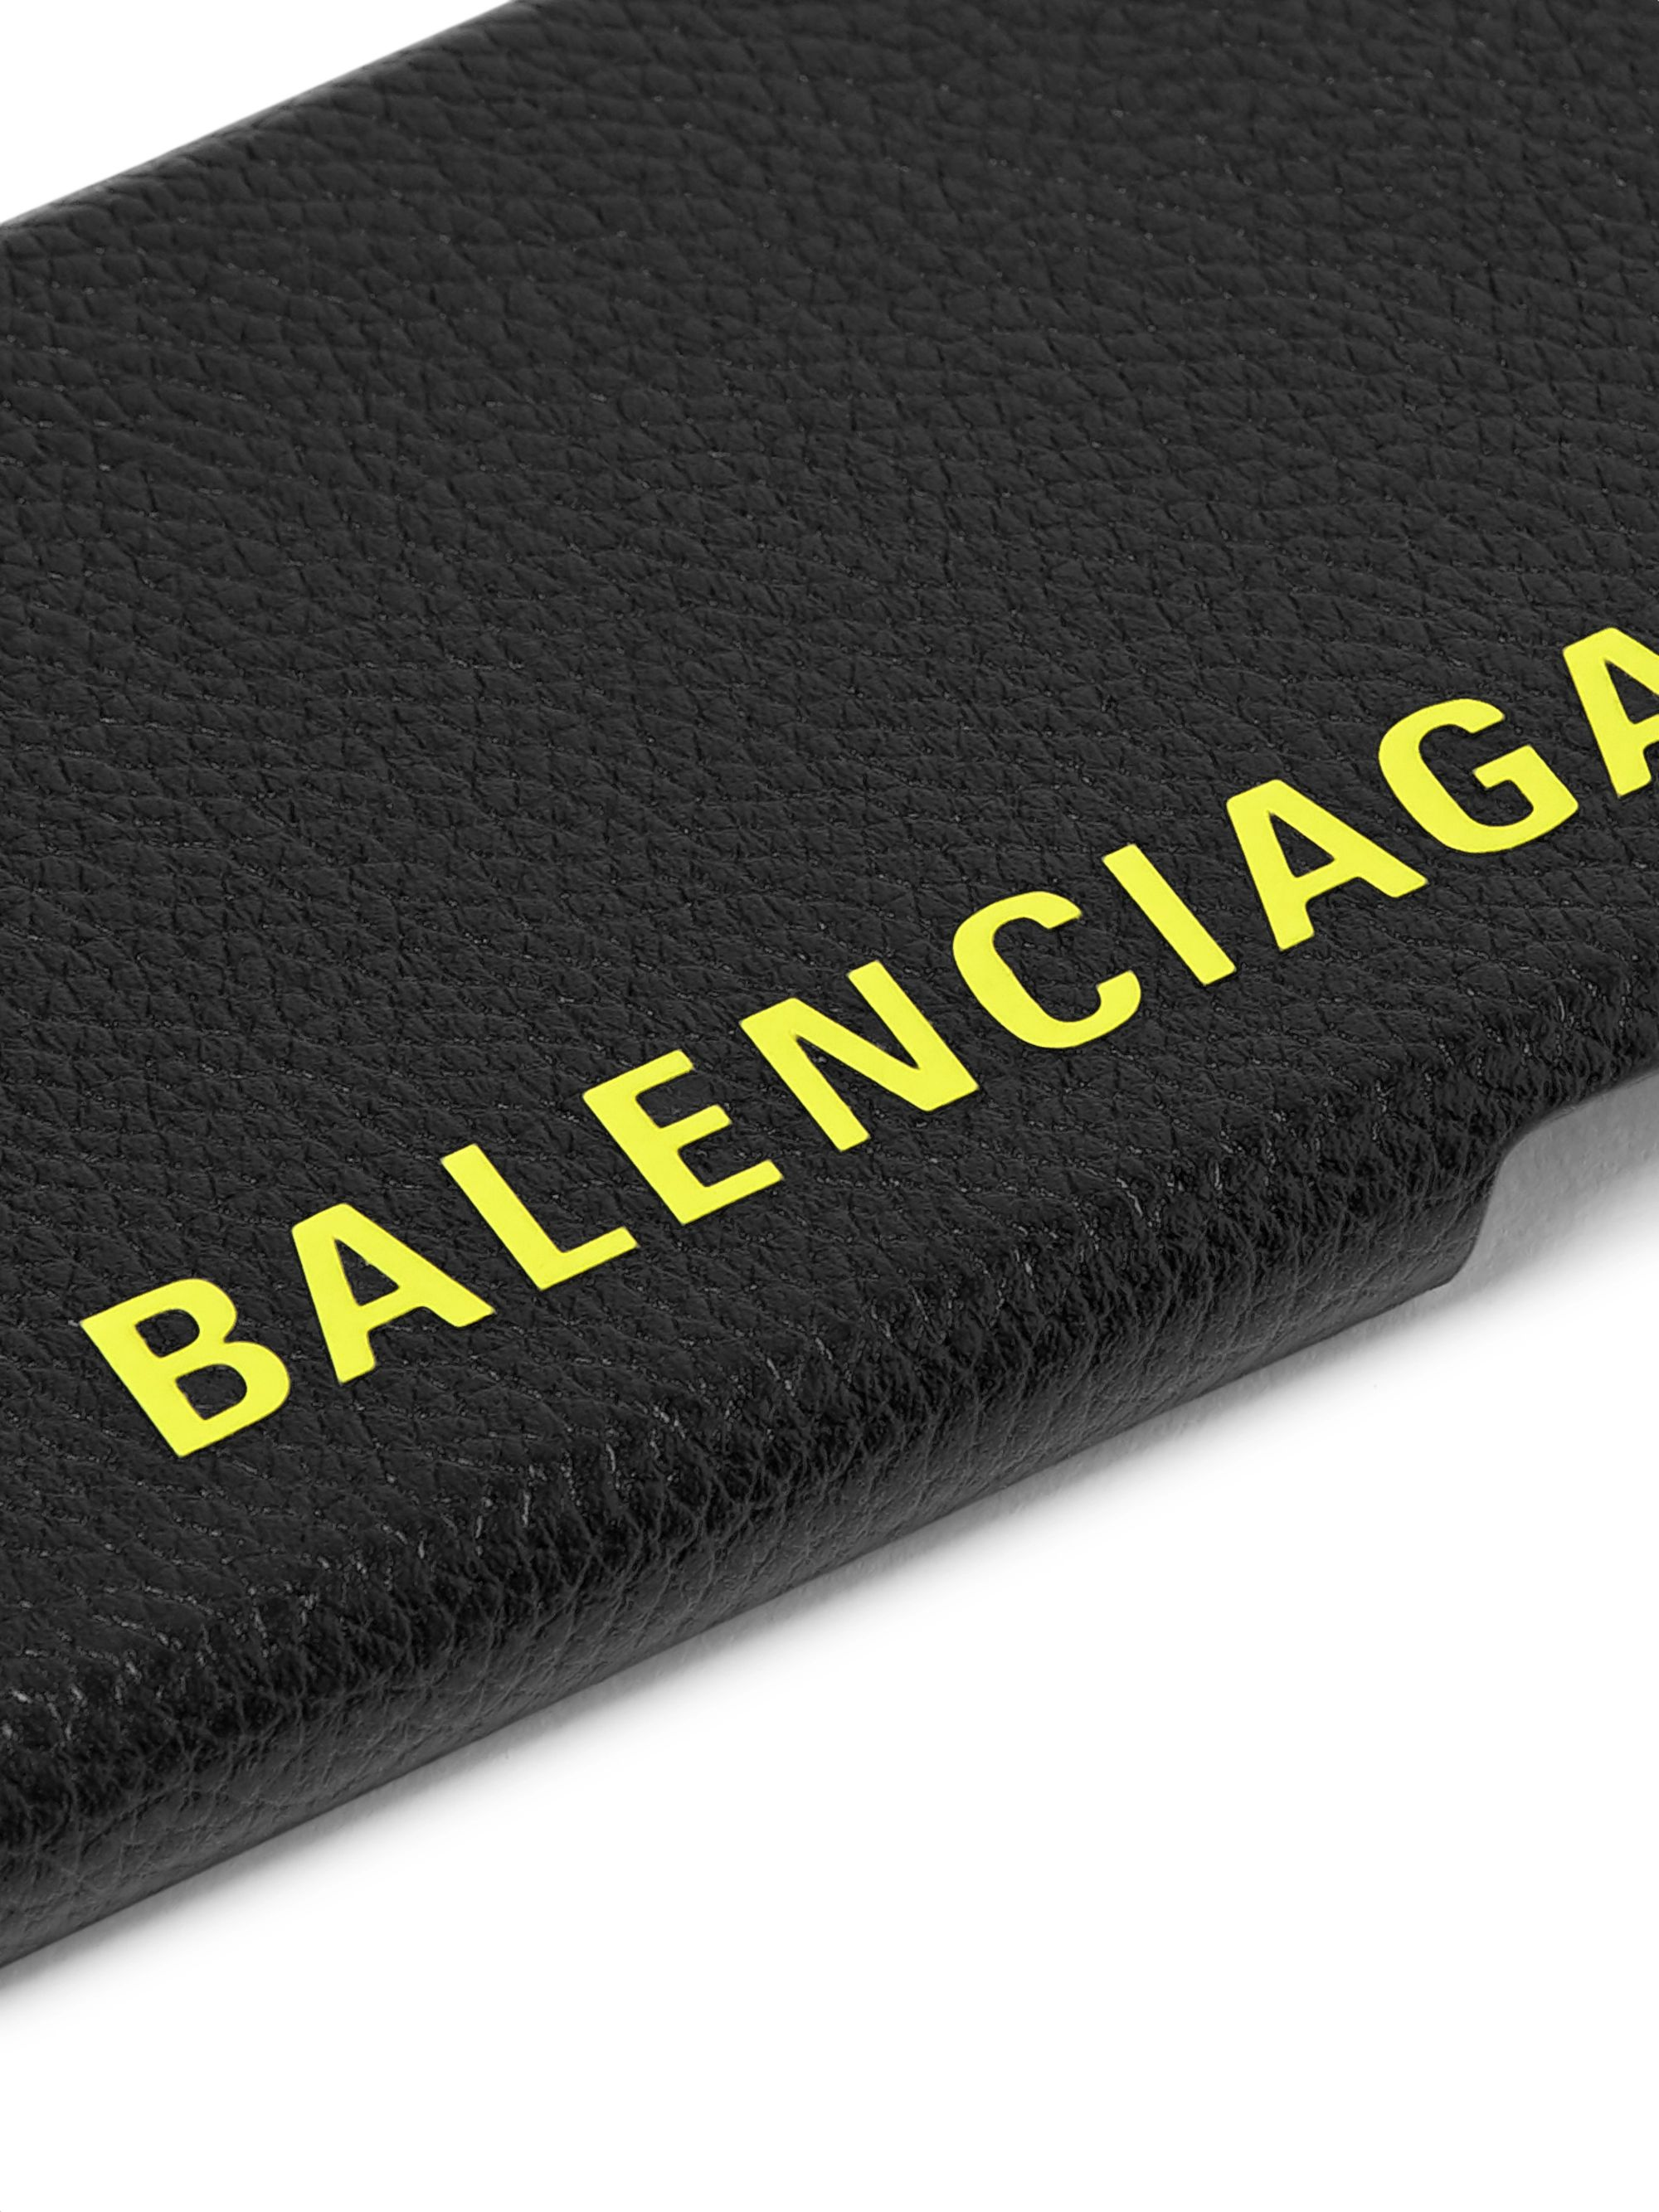 Balenciaga Logo-Print Full-Grain Leather iPhone X Case